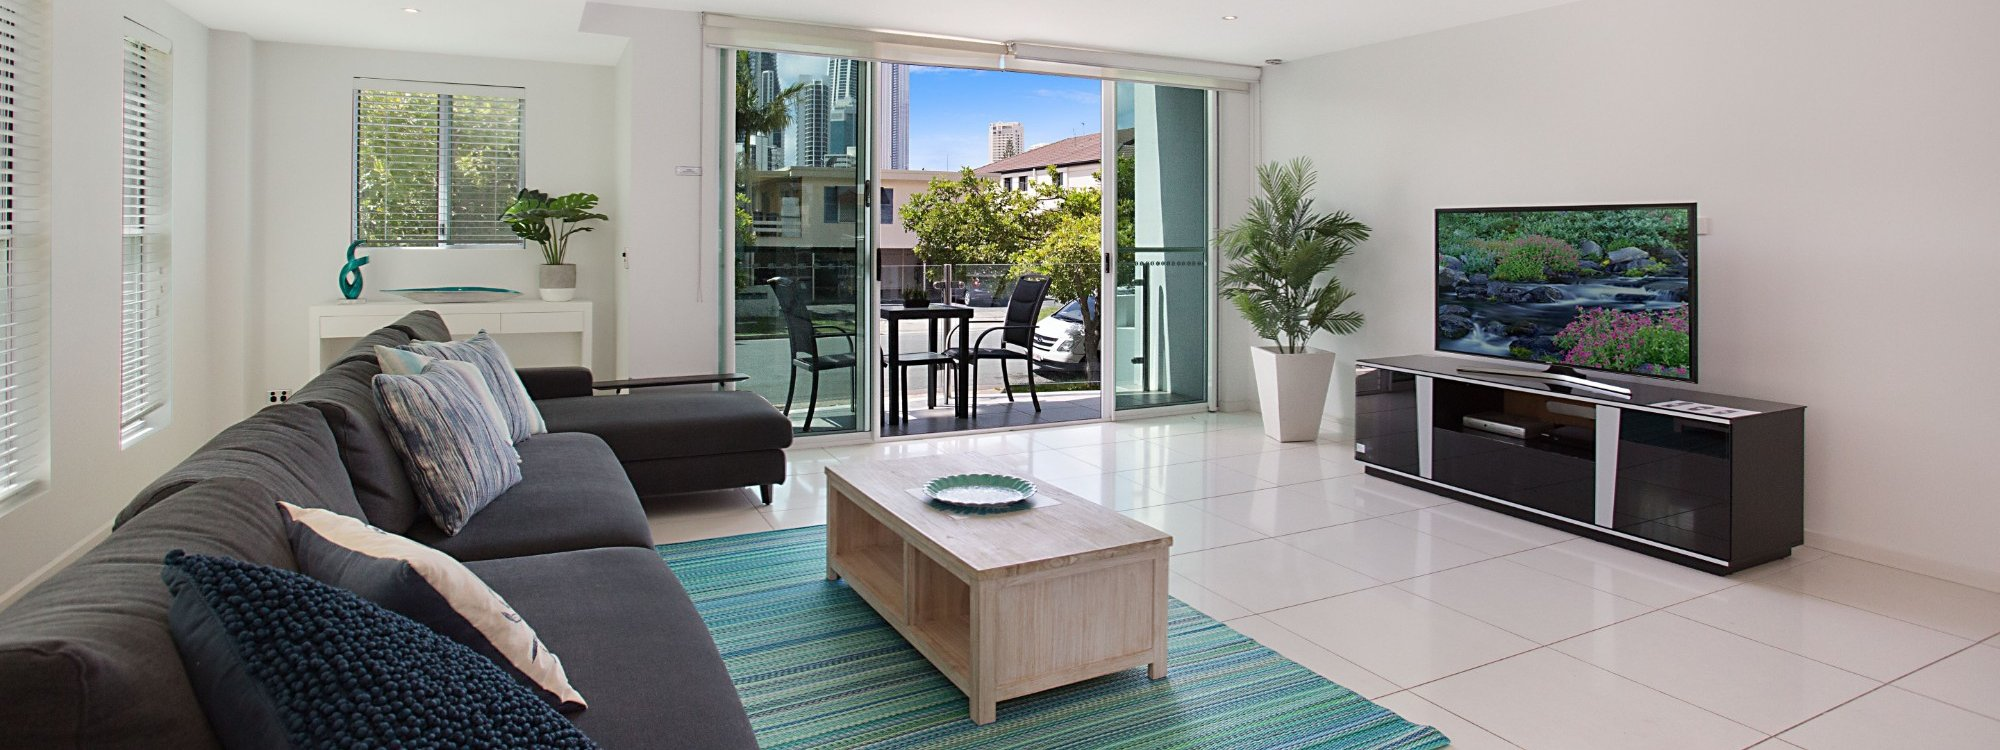 Casa Grande on the Water - Surfers Paradise - Living area with balcony